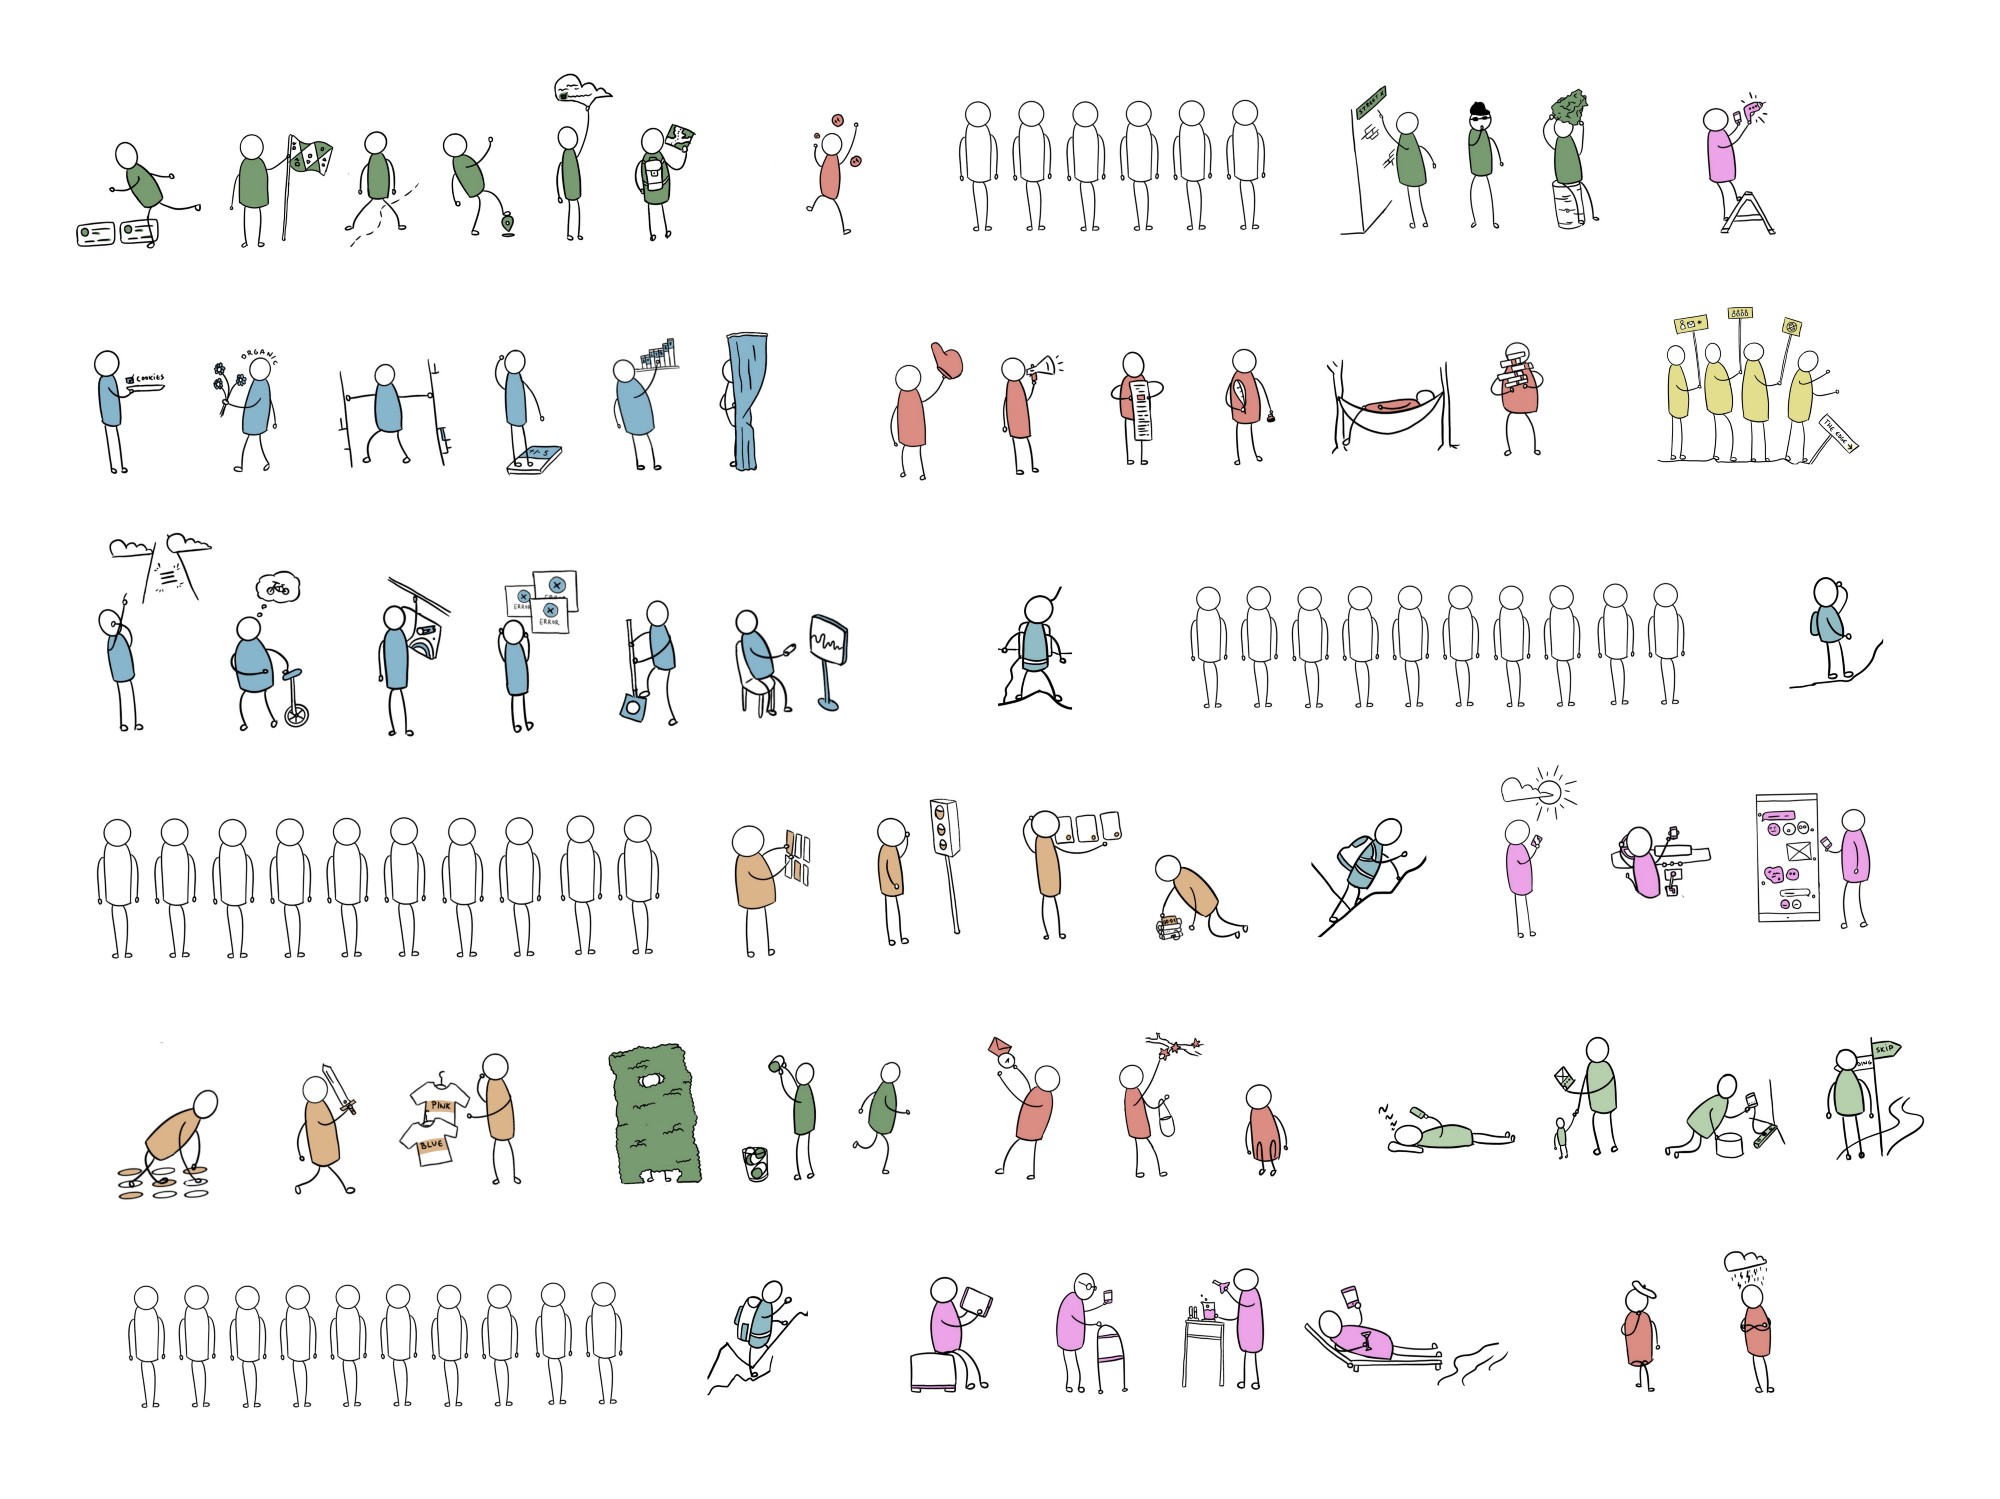 Illustration of 100 little doodle styled people doing different things. They are arranged in 6 rows